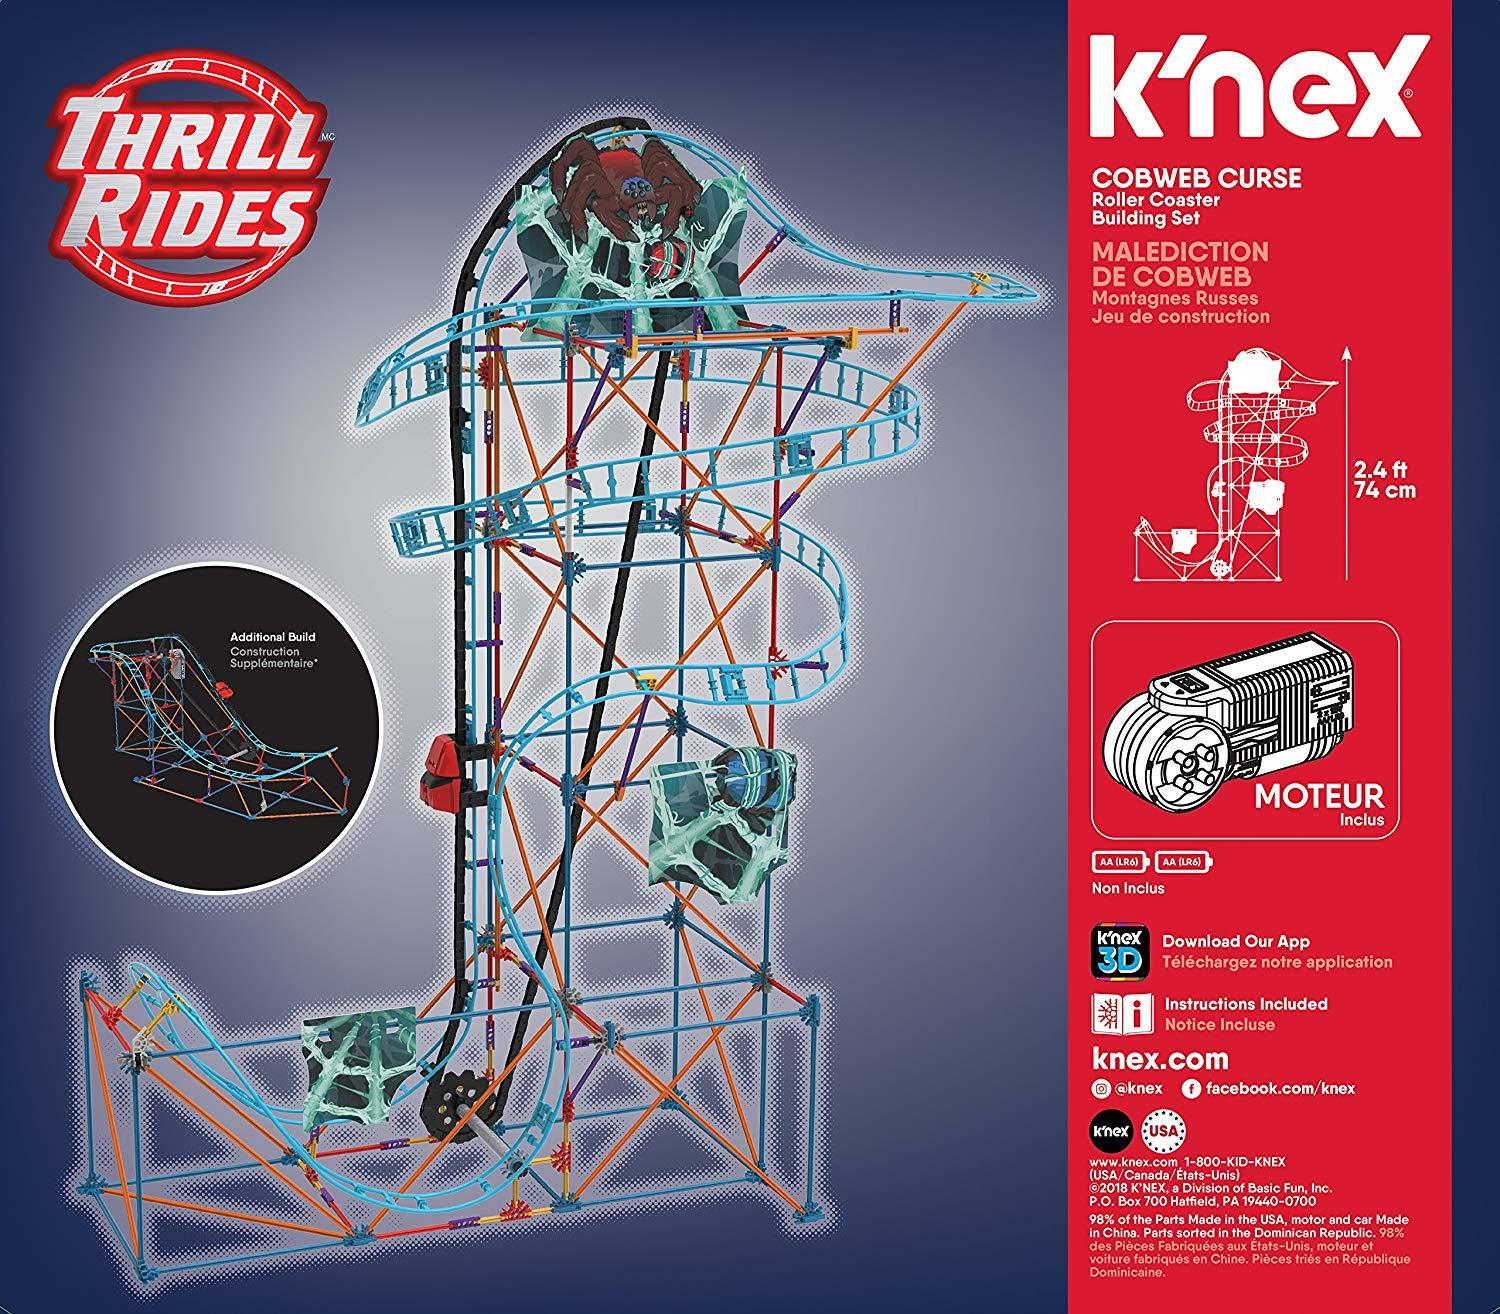 K Nex Thrill Rides Cobweb Curse Roller Coaster Building Set Funtopia Shop